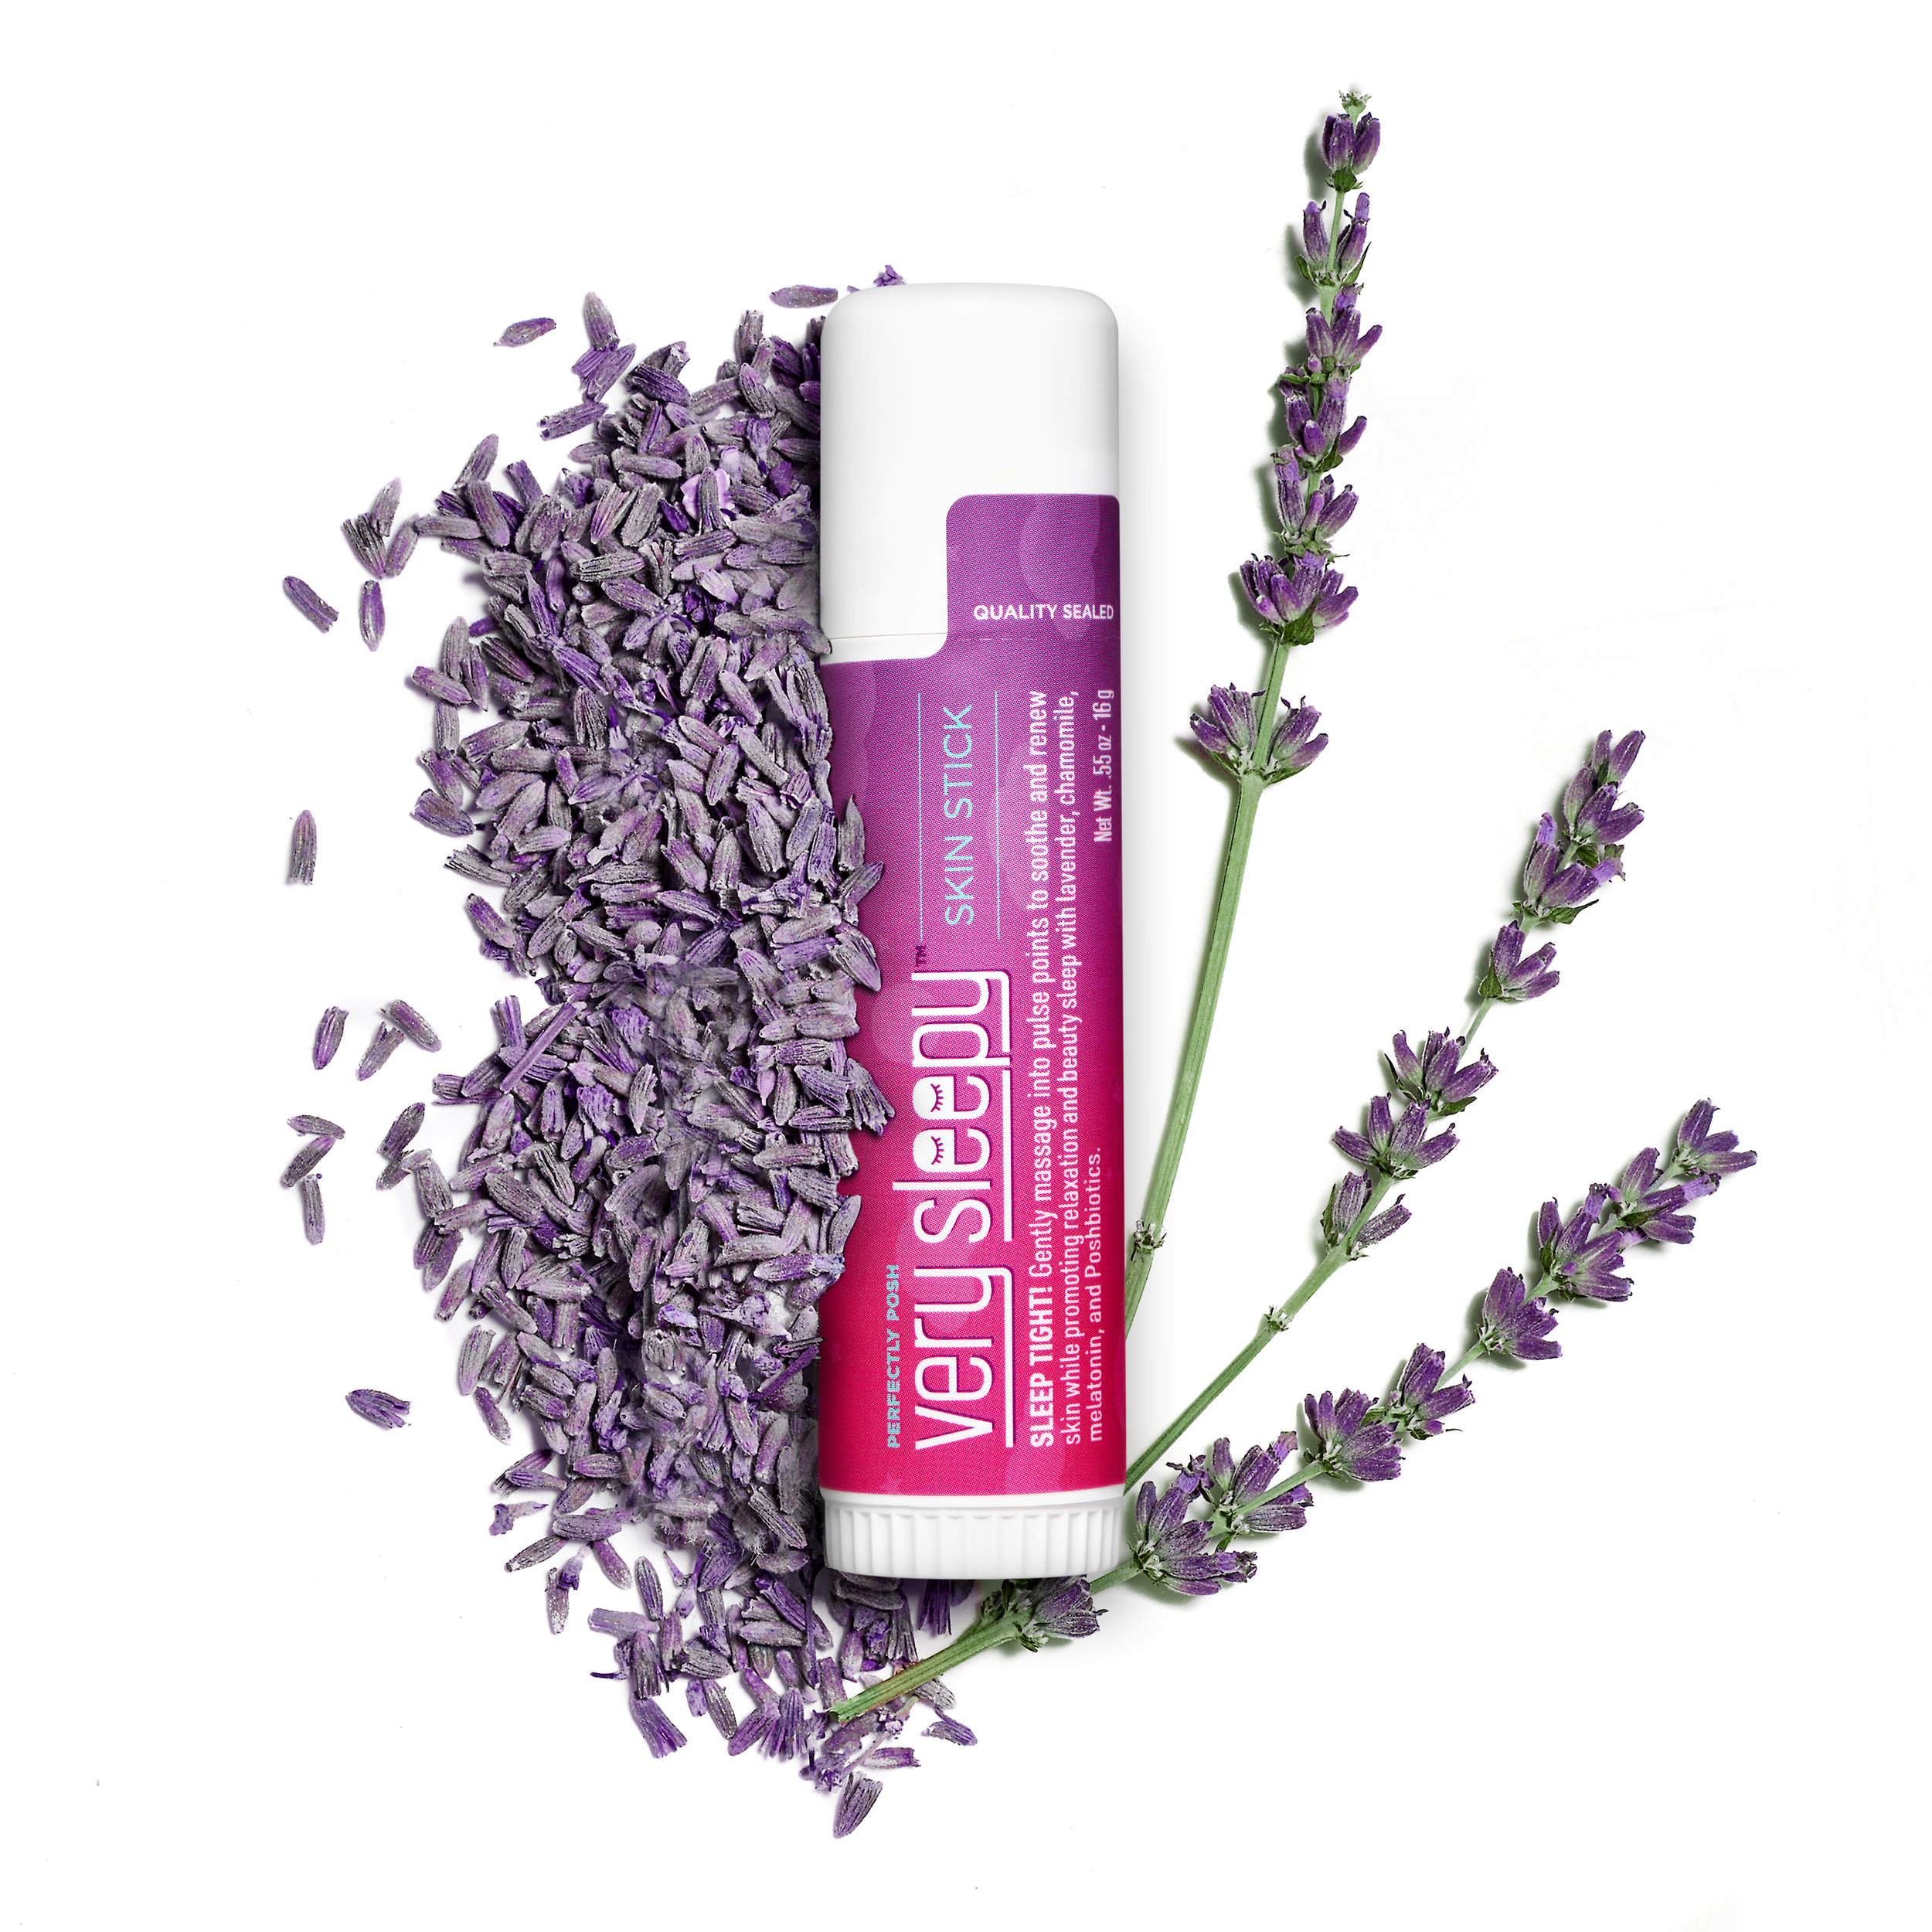 Perfectly Posh Very Sleepy Skin Stick with melatonin and lavender essential oil